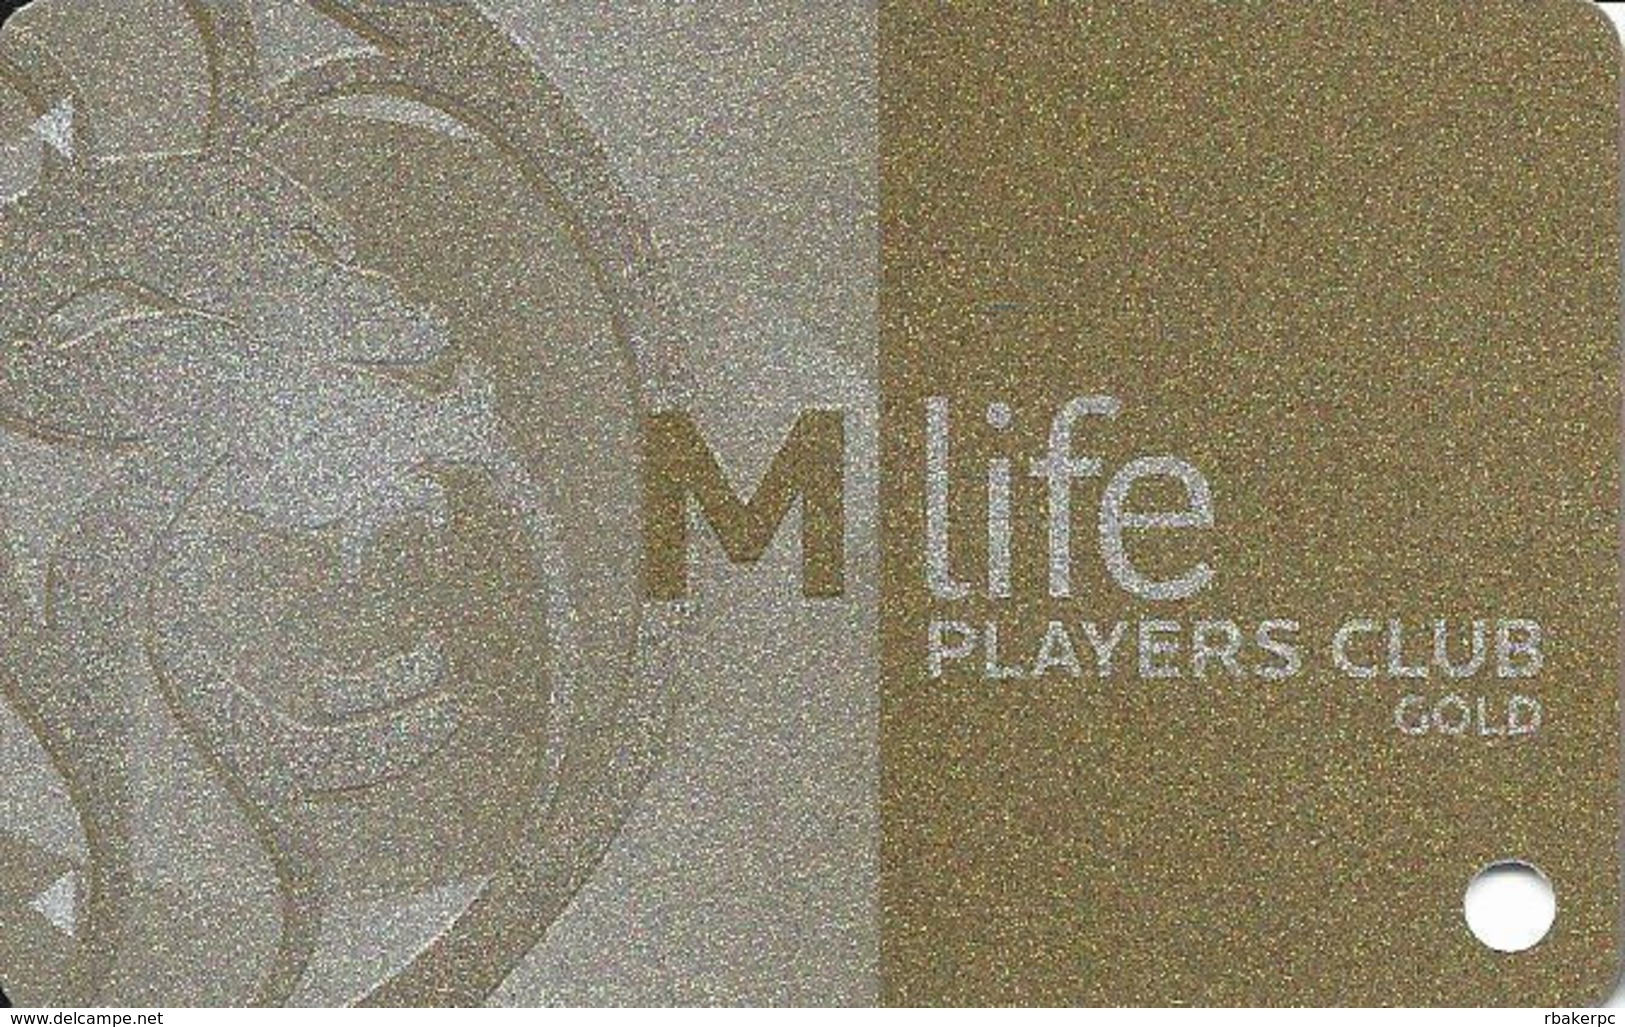 MGM Casinos - Multiple Locations - BLANK Gold Slot Card With No Text Over Mag Stripe & Bottom Text Indented - Casino Cards